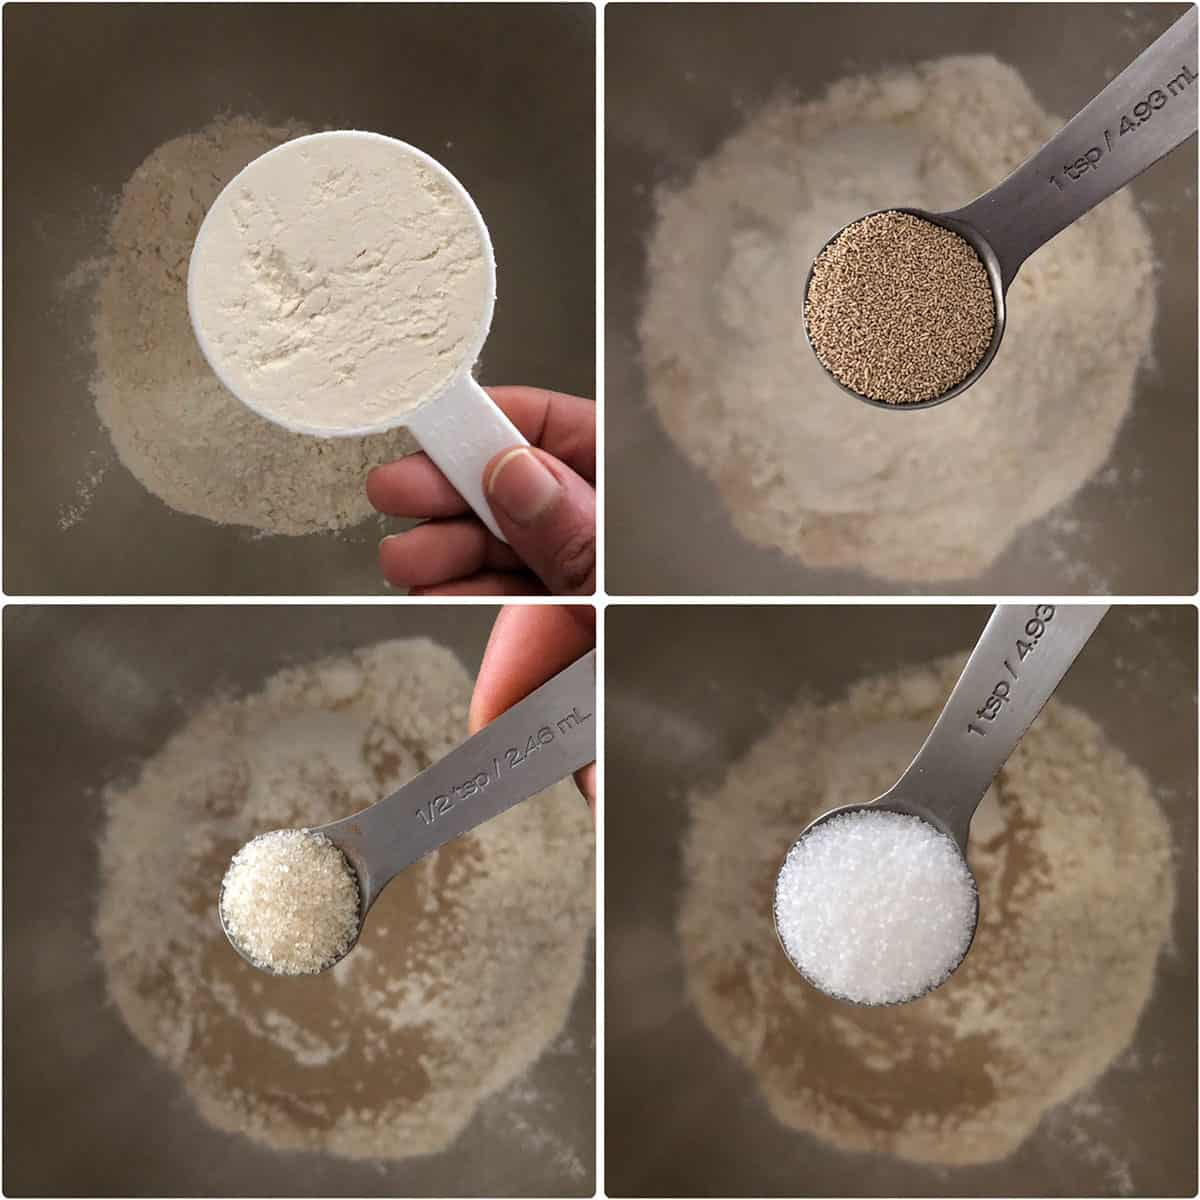 Dry ingredients being added to a mixing bowl